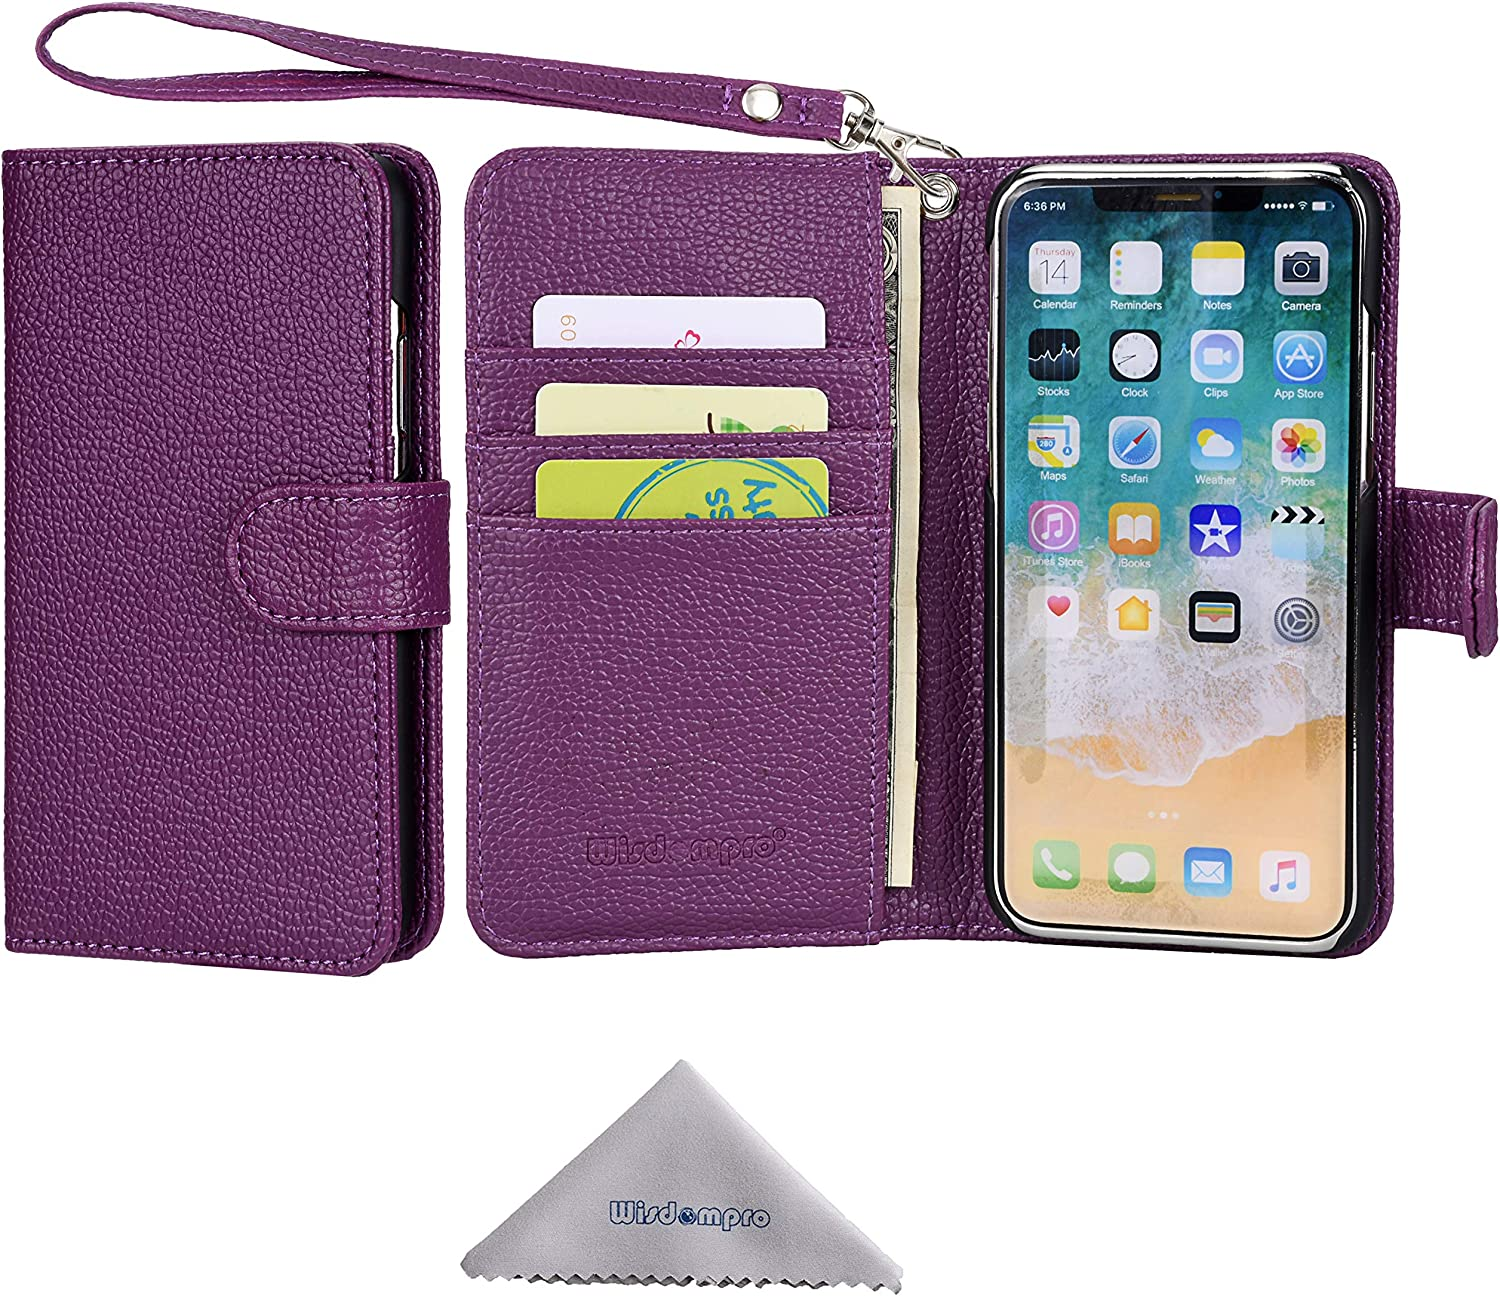 Black 5 iPhone 5s Case 5s iPhone SE Case Wisdompro Premium PU Leather 2-in-1 Protective Wallet Phone Case Folio Flip Cover with Kickstand and Credit Card Holder Slots for Apple iPhone SE